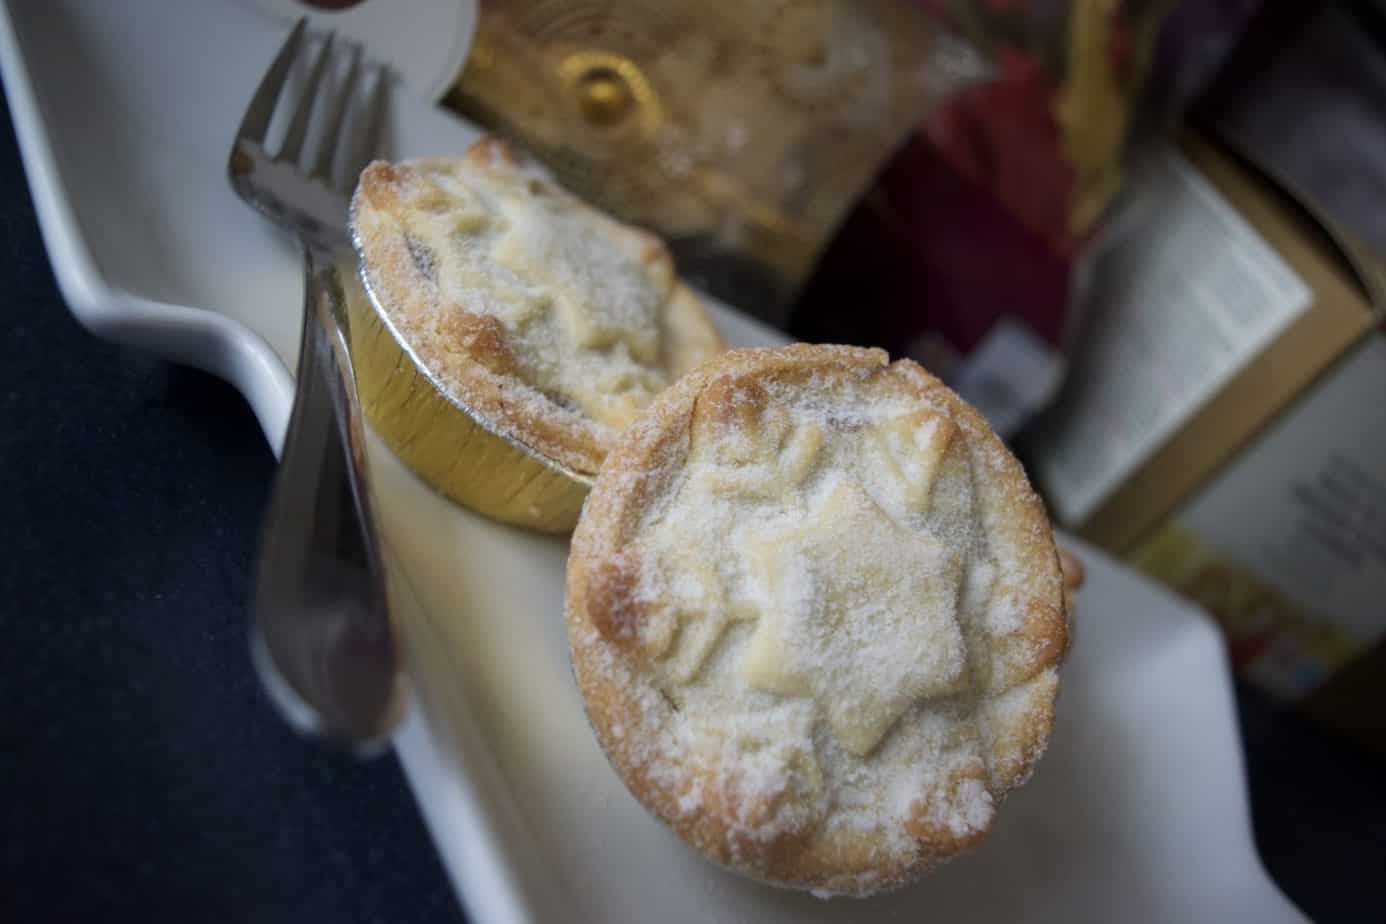 Marks and Spencer's mince pies